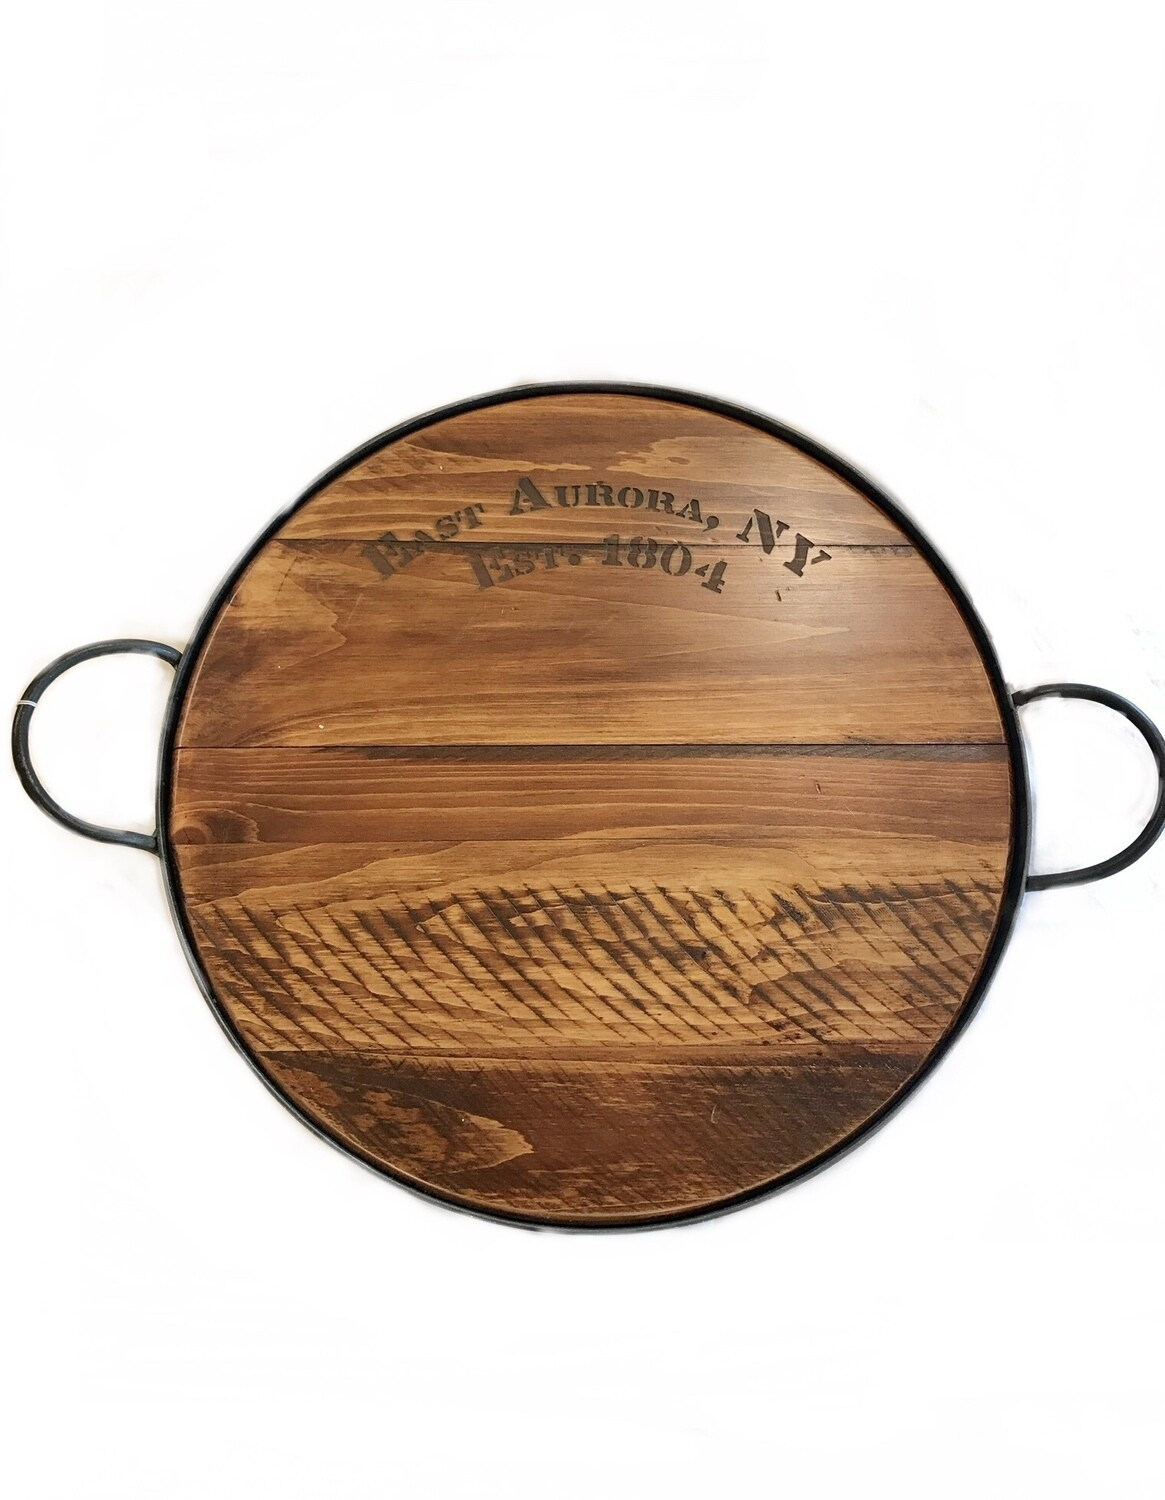 East Aurora cask and crown tray